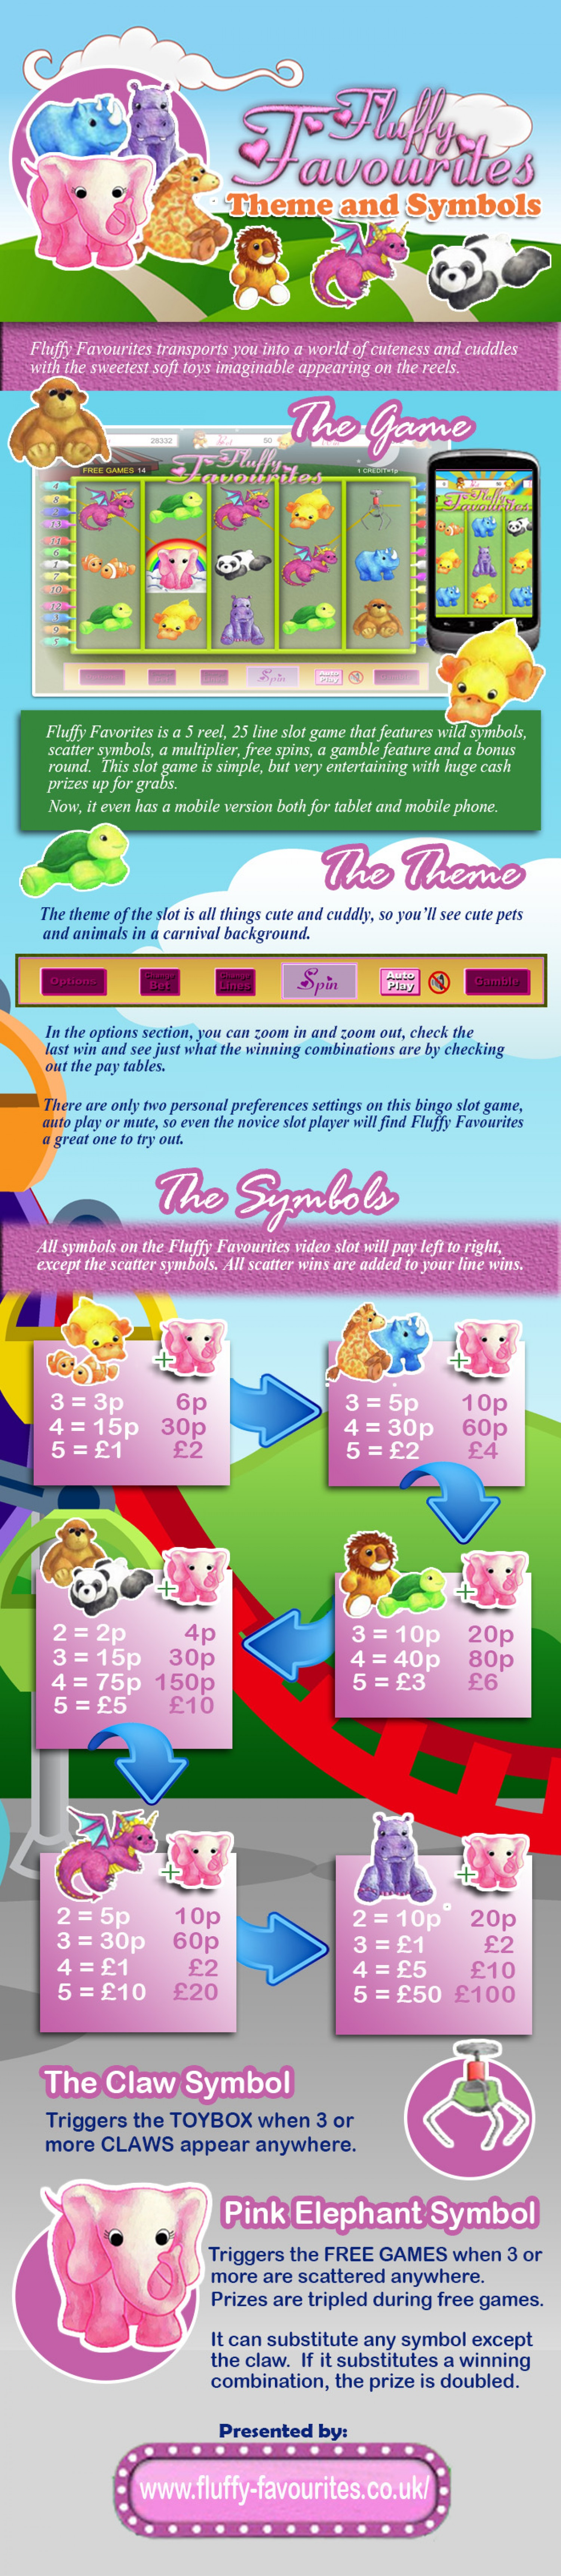 Fluffy Favorites Infographic